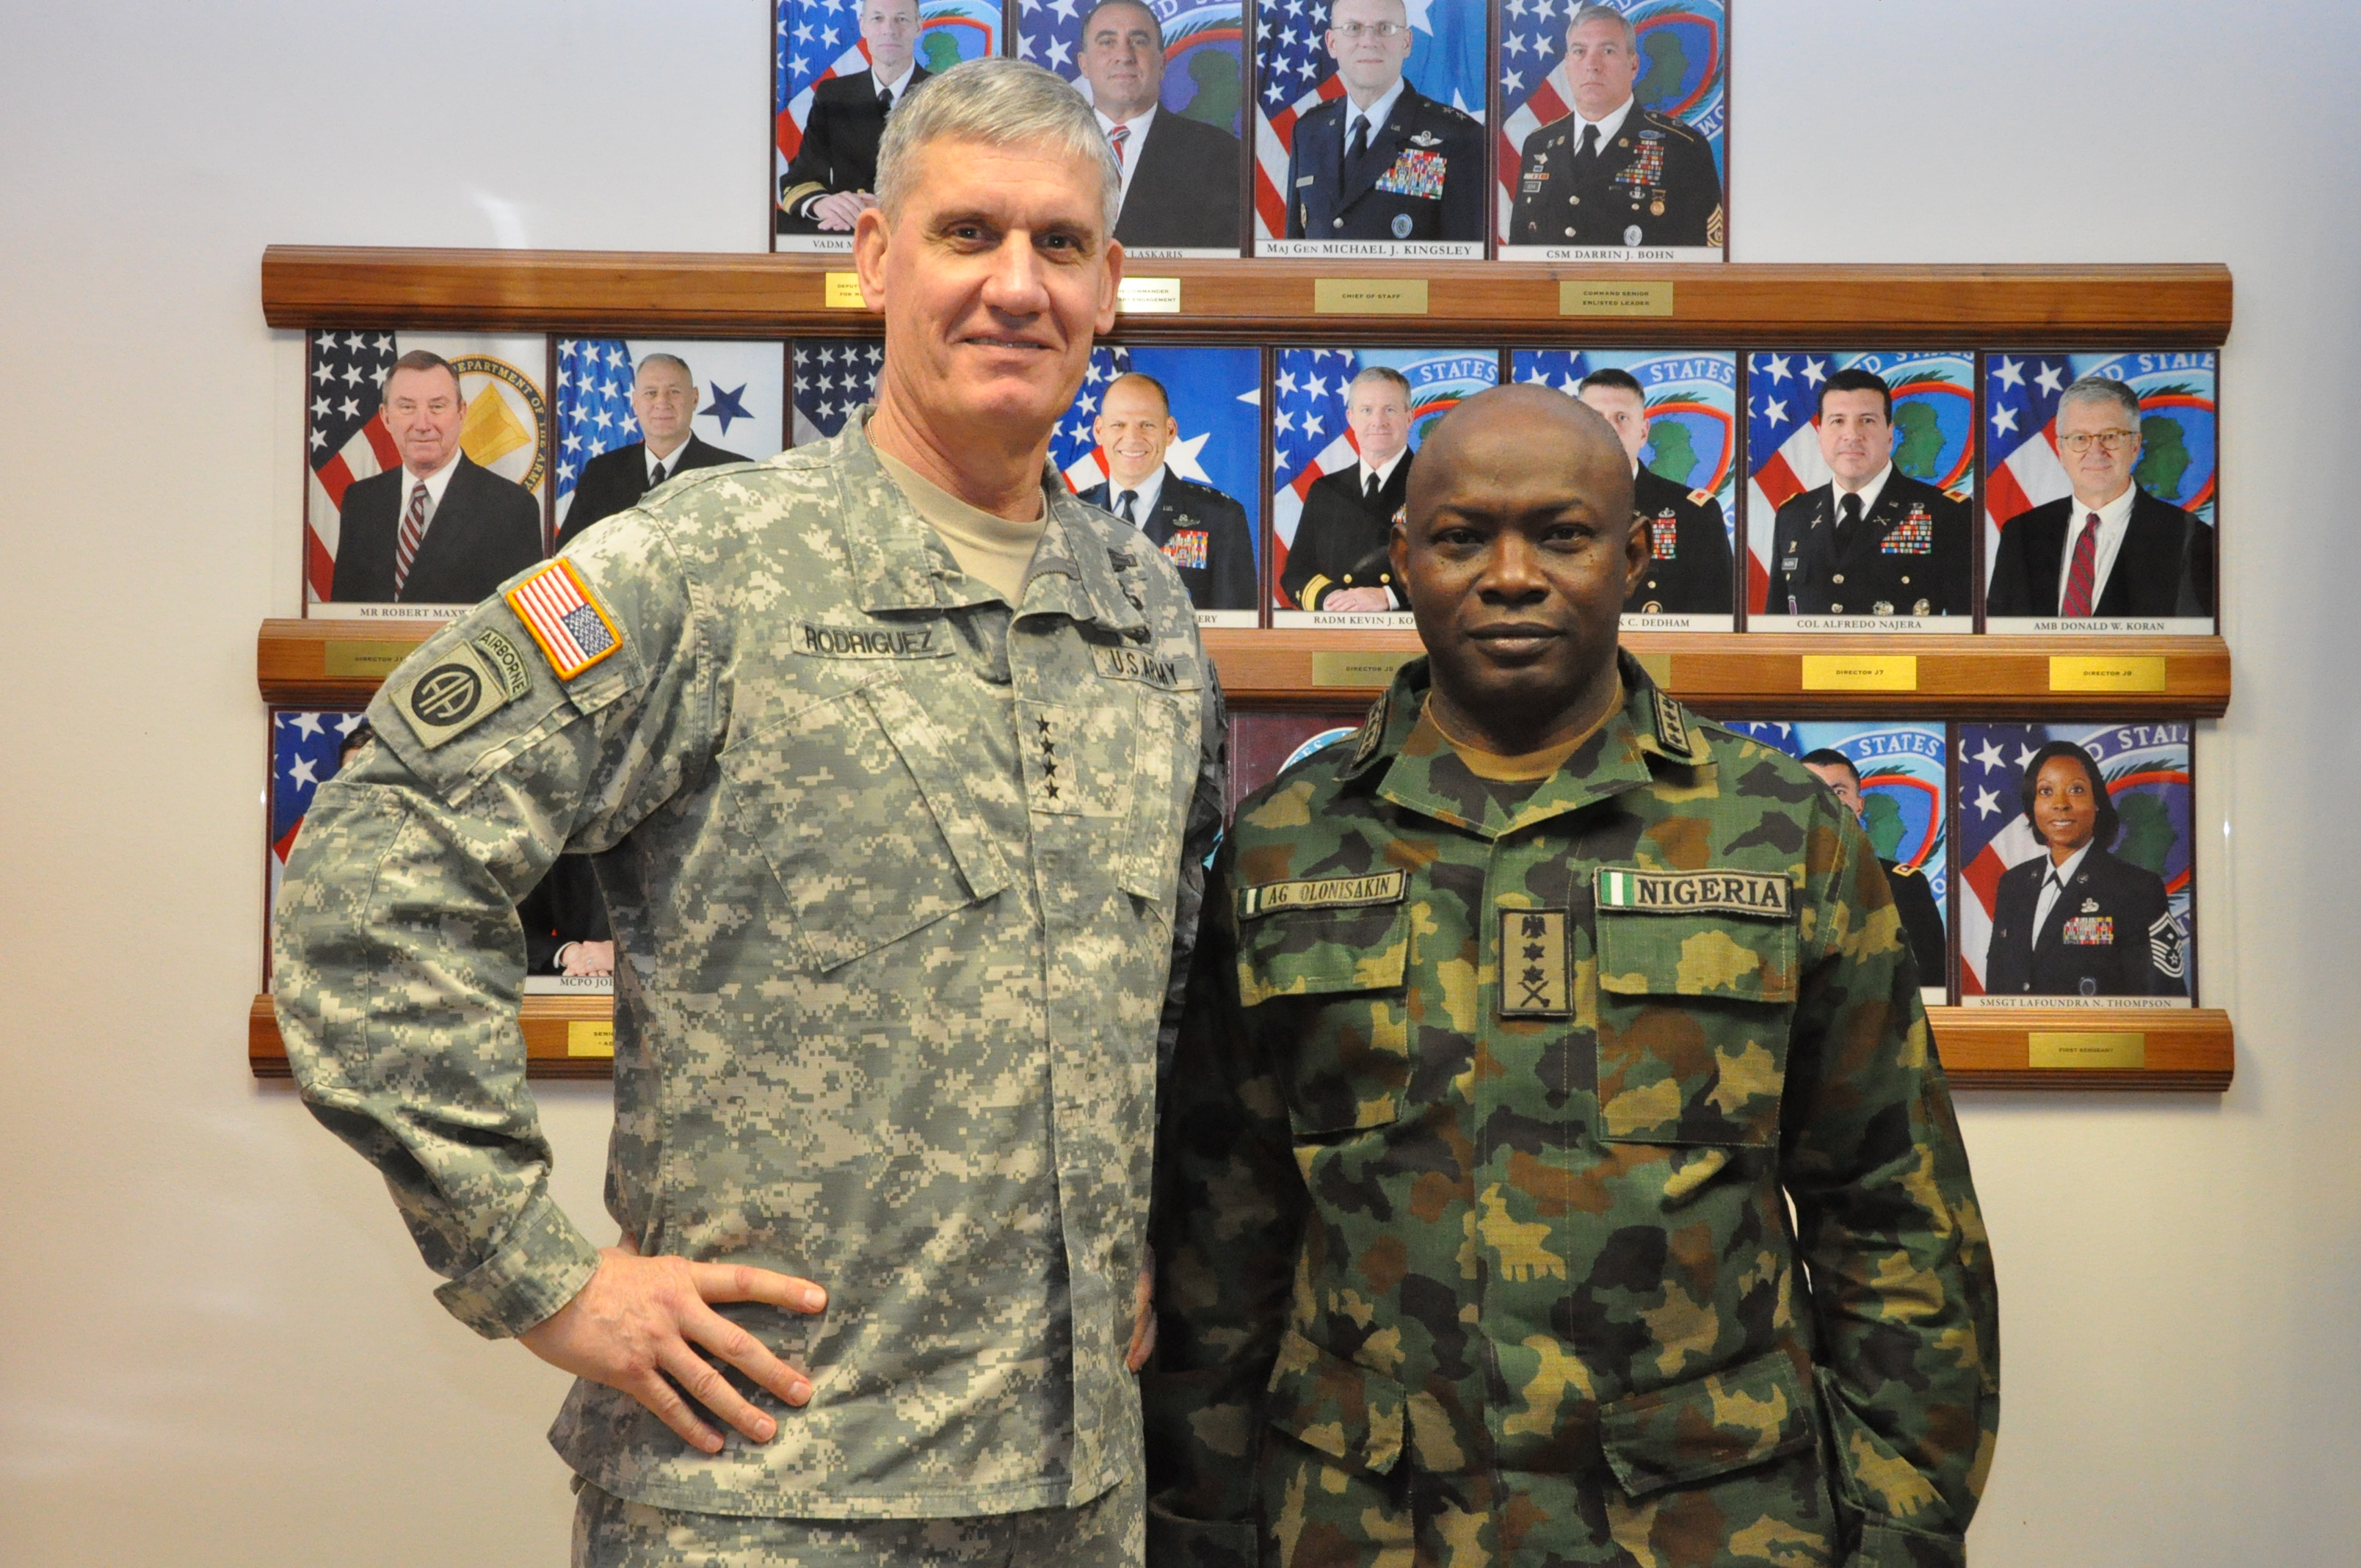 Nigeria Chief of Defence Staff, Gen. Abayomi Olonisakin (right) and the Commander, U.S. Africa Command, Gen. David Rodriguez, pose for a photo.  AFRICOM hosted a two-day meeting that brought together the component commanders and several senior members of the Nigerian military.  The purpose of the visit was to reinforce the importance of a strong US-Nigeria security cooperation relationship, with topics focused on ways to counter terrorism, joint operations, logistics and maritime security in the Gulf of Guinea, Feb. 9, 2016, U.S. Army Garrison Stuttgart, Germany. (Photo by Brenda Law, U.S. Africa Command Public Affairs/RELEASED)